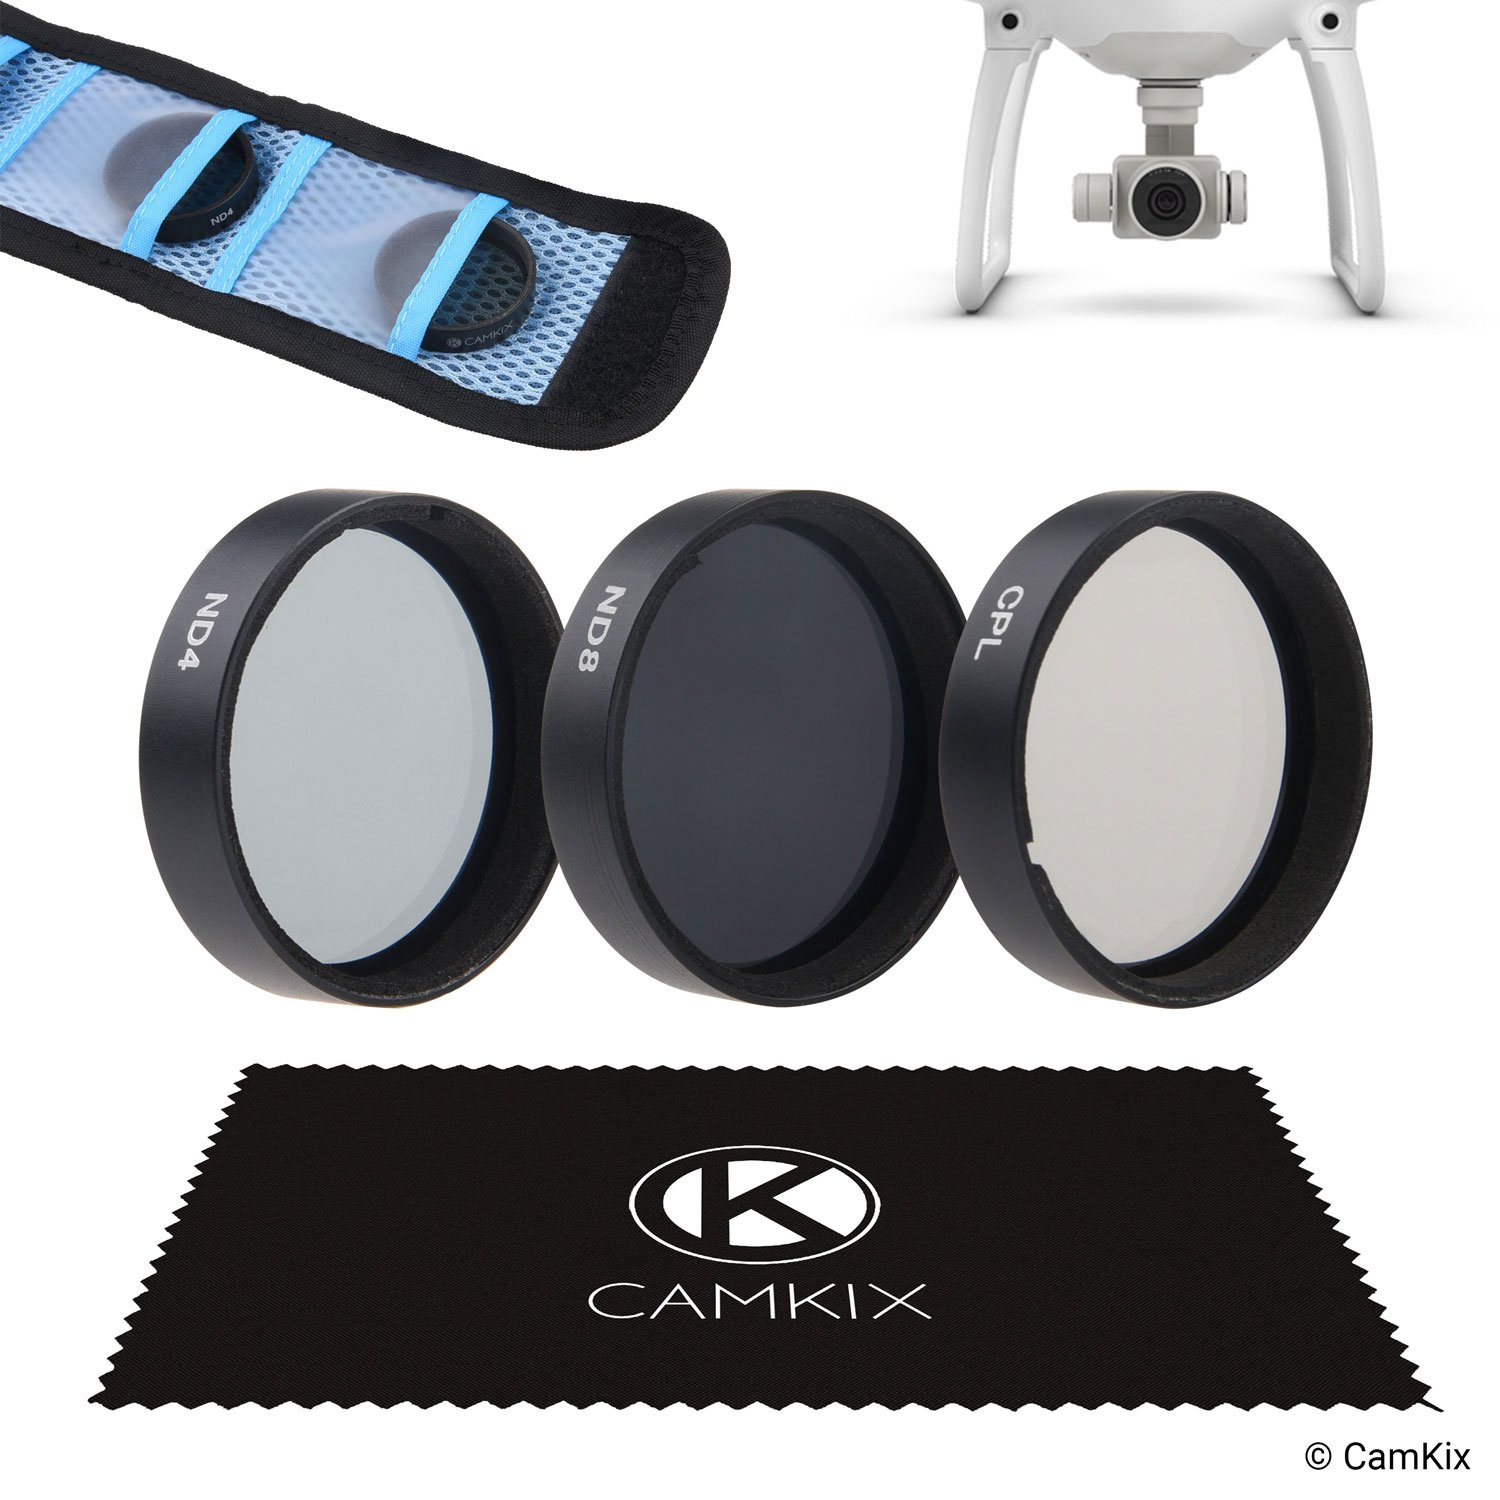 CamKix Filter Pack for DJI Phantom 4 and 3 - Include 2 CamKix Neutral Density Filters (ND4 and ND8), a CamKix Circular Polarizer filter (CPL) and a CamKix cleaning cloth - Filter Storage Bag Included by CamKix